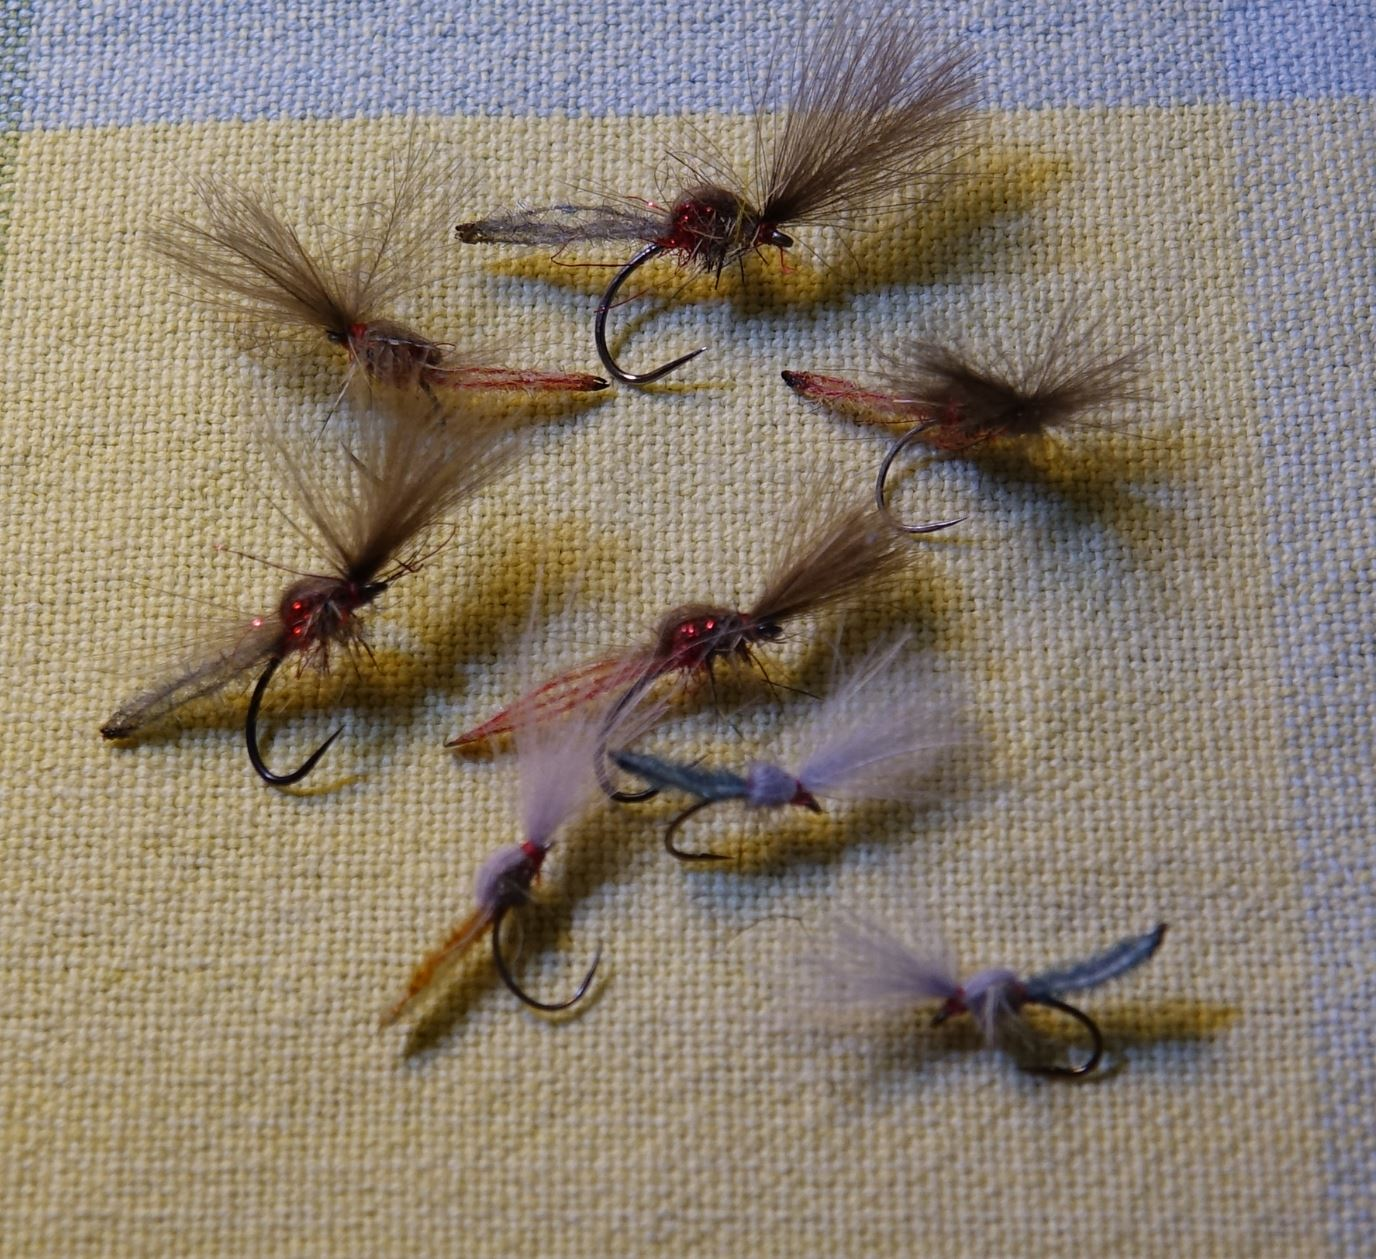 Chironome microchenille CDC dubbing mouche fly tying eclosion